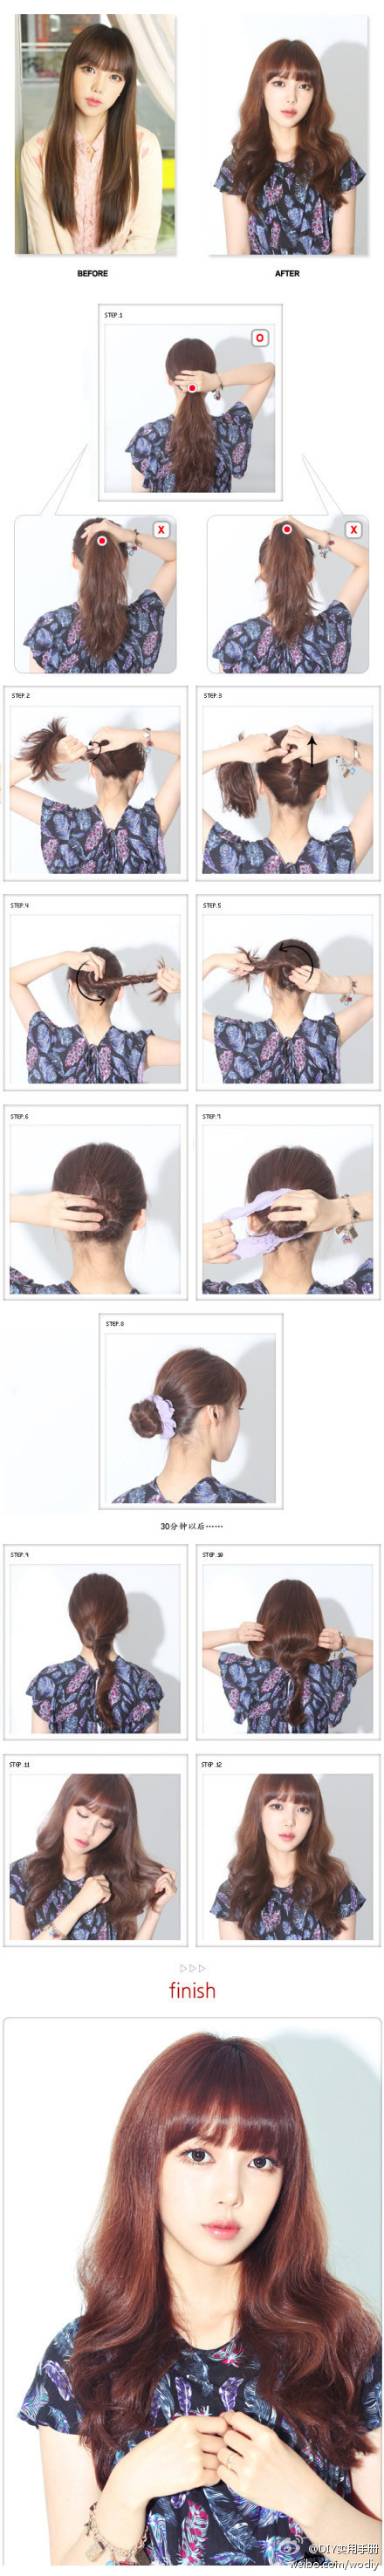 Pin by monse ovalle on cabello pinterest hair style hair and